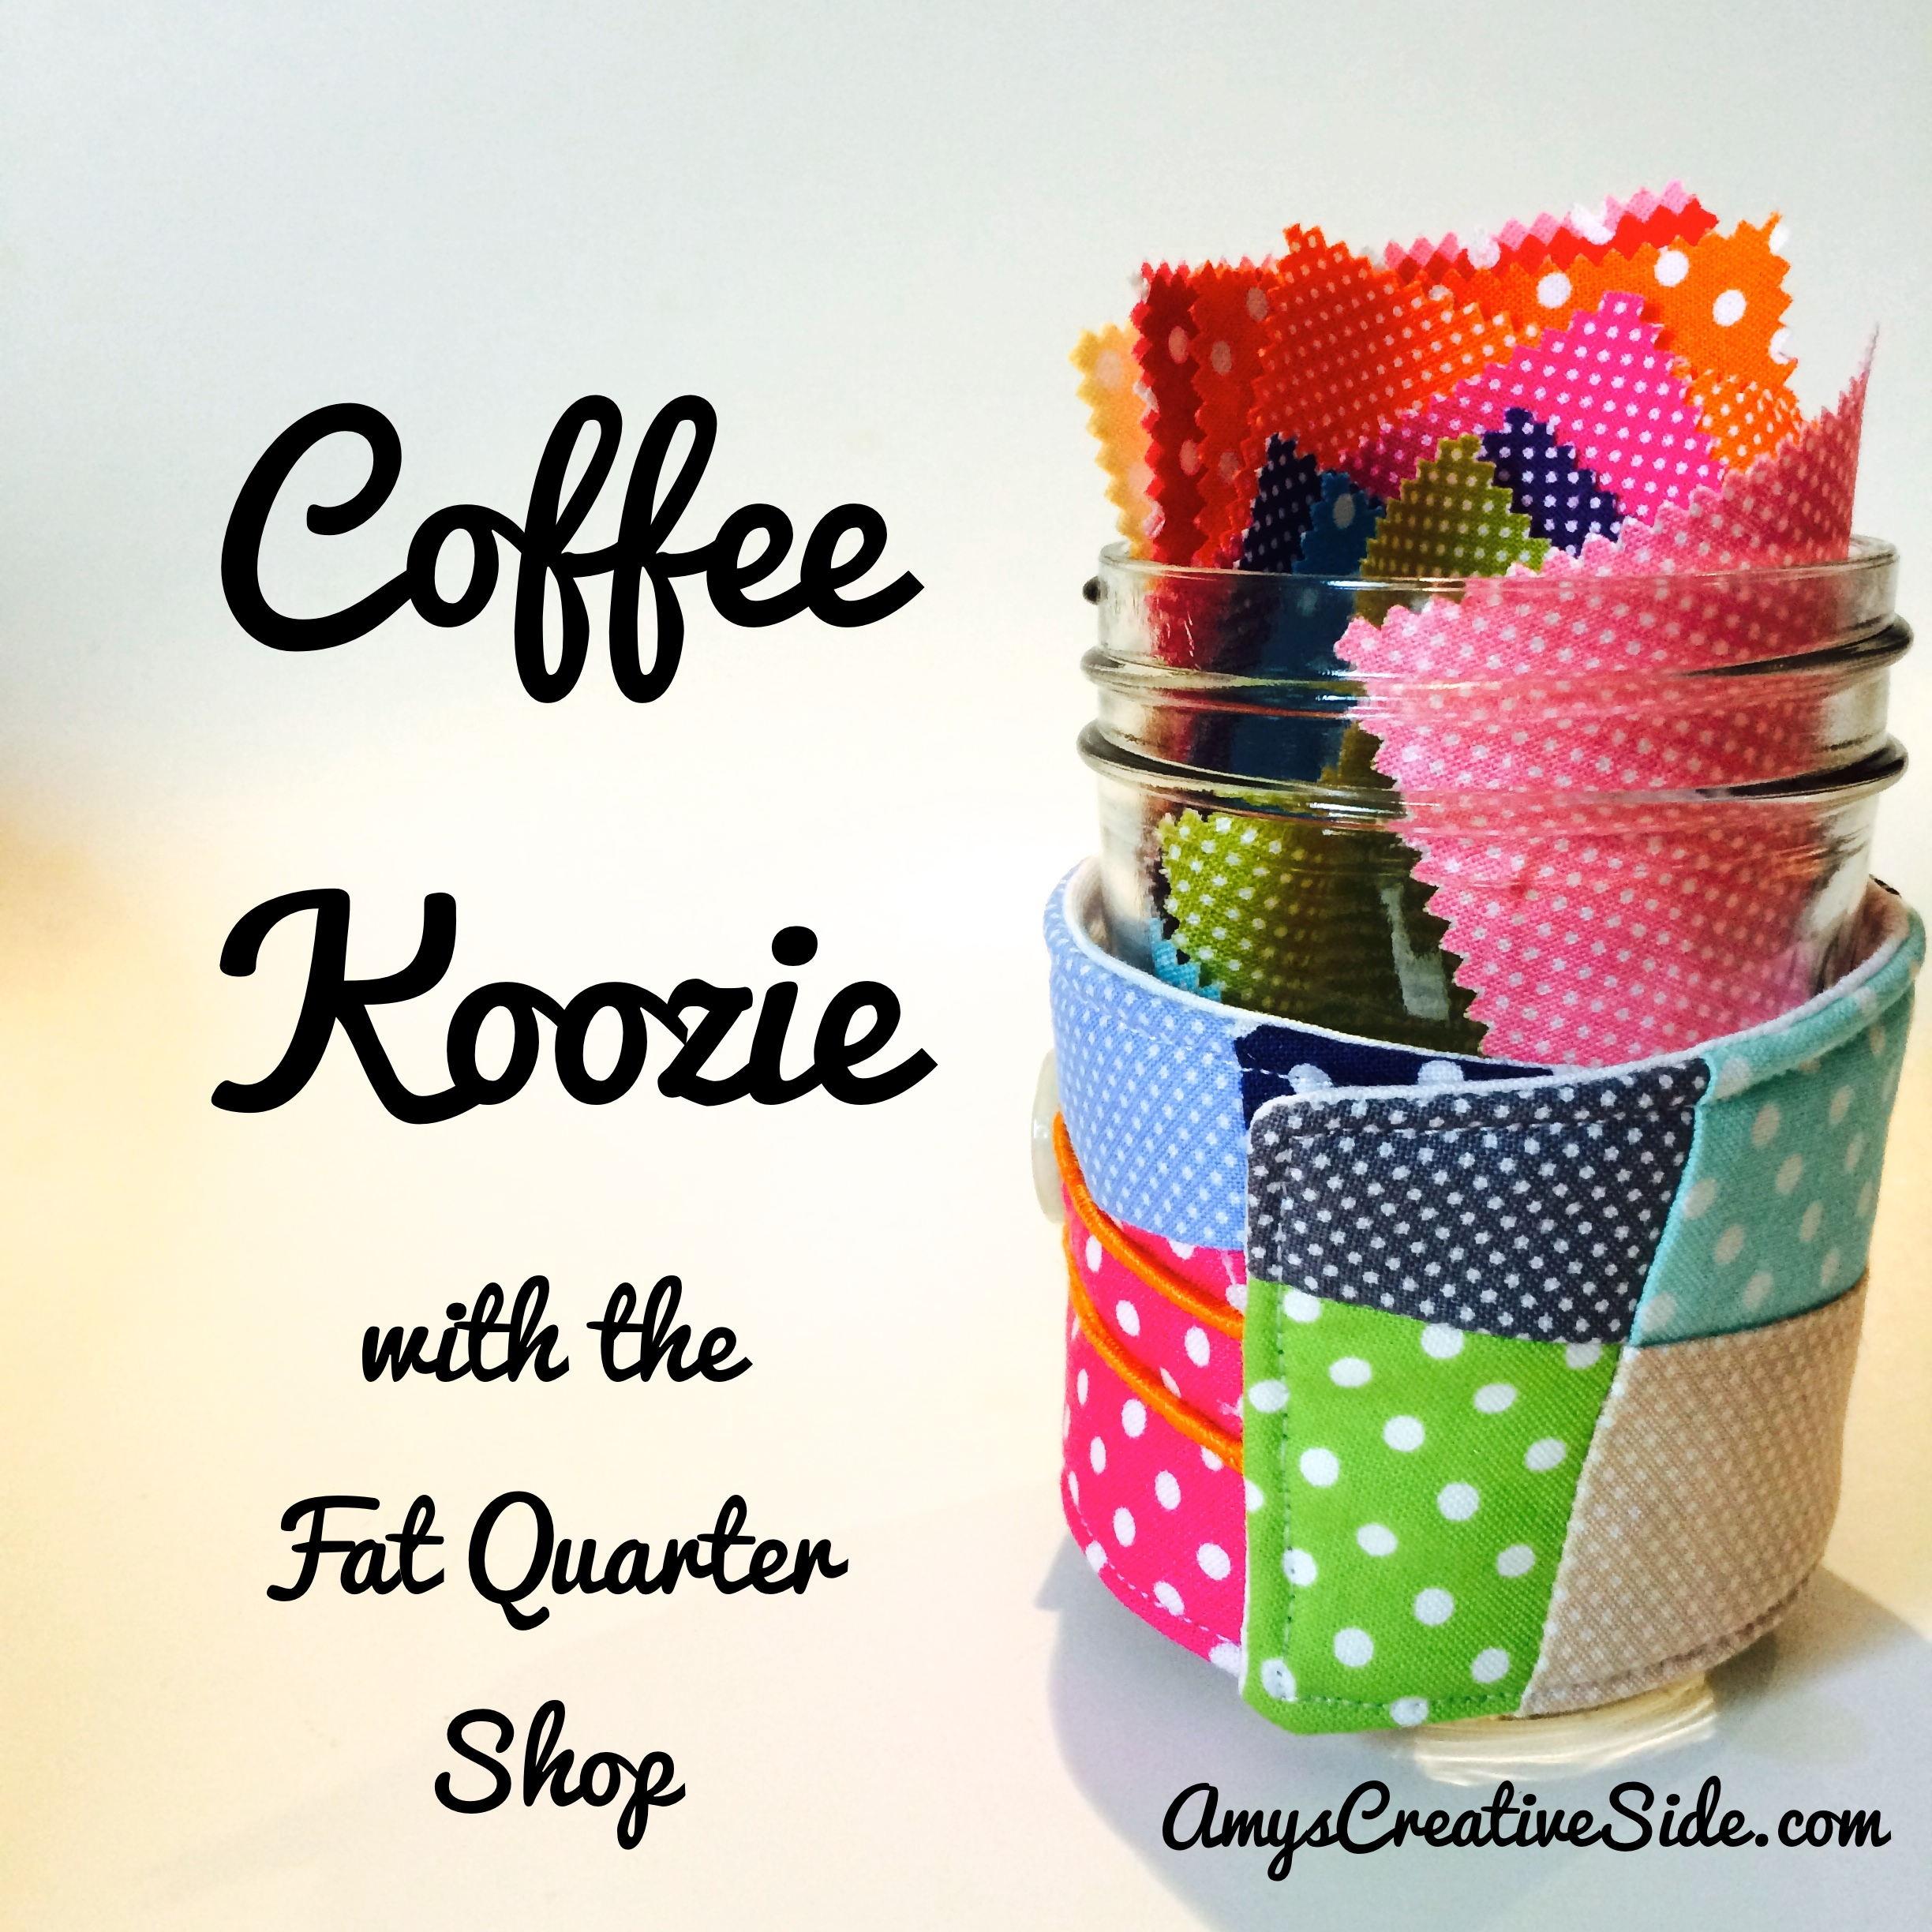 Coffee Koozie - AmysCreativeSide.com